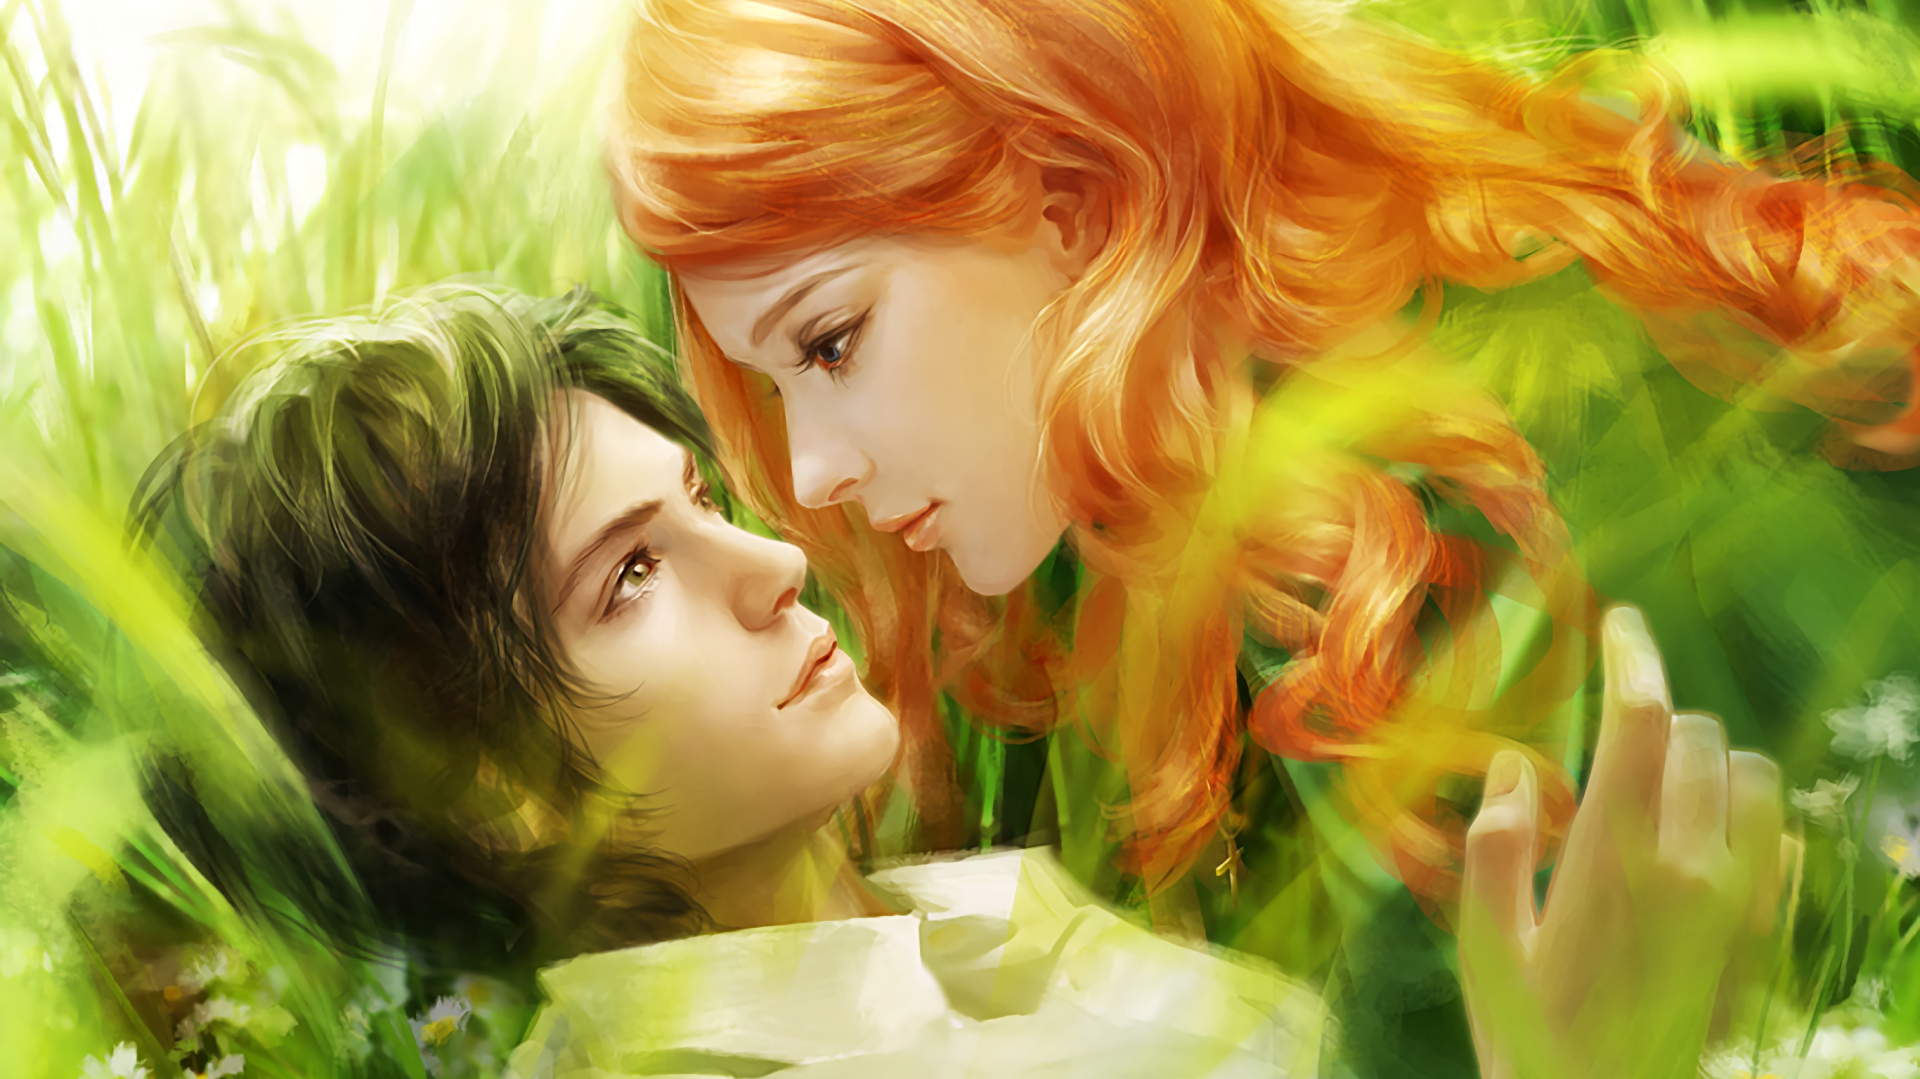 Artistic - Love  Fantasy Romantic Artistic Girl Blue Eyes Boy Green Eyes Redhead Wallpaper